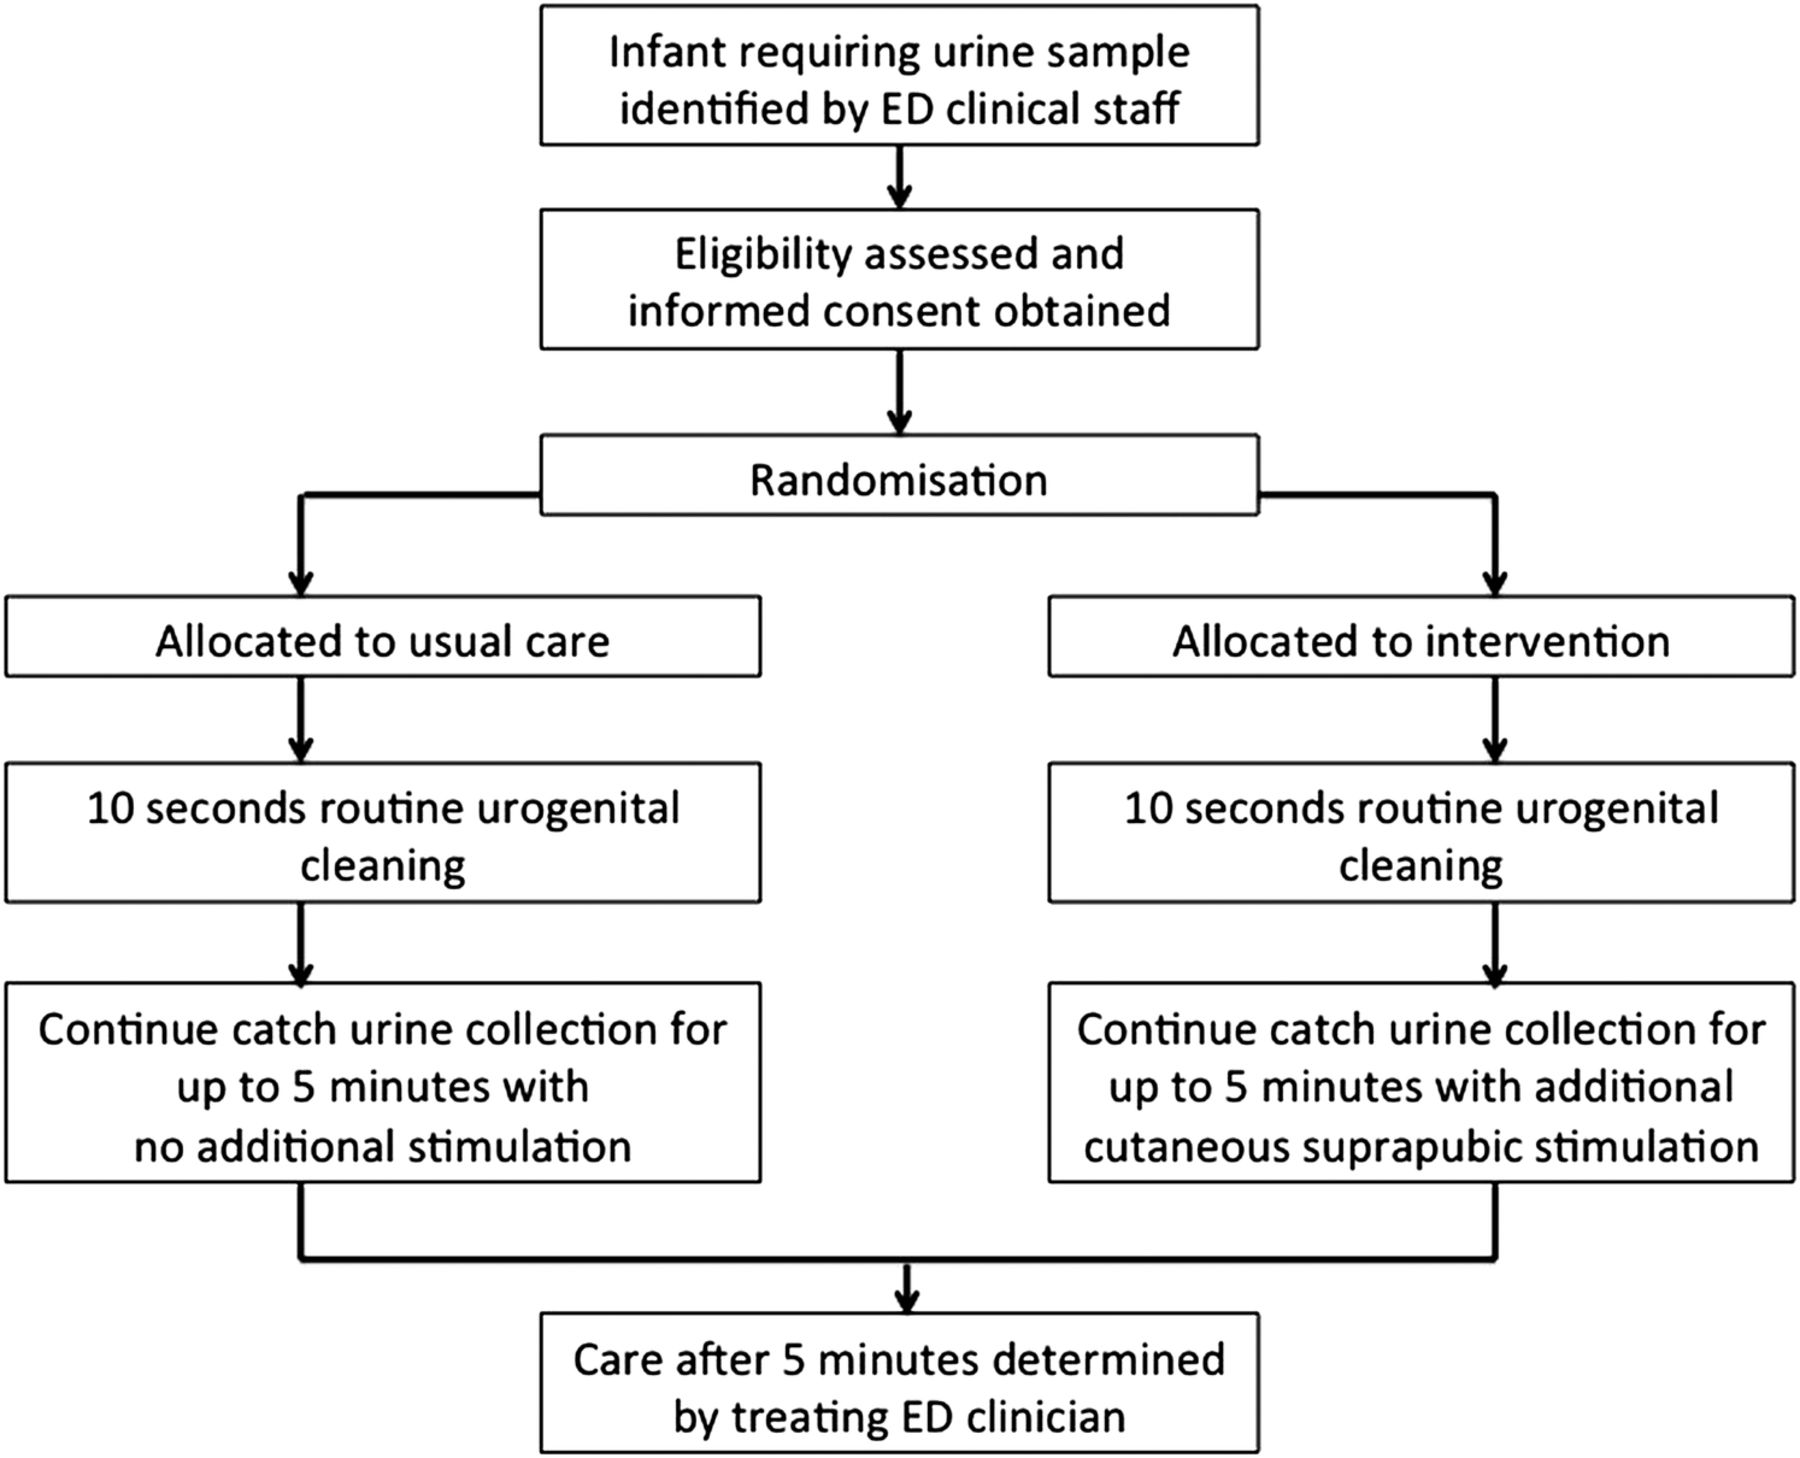 The Quickwee Trial  Protocol For A Randomised Controlled